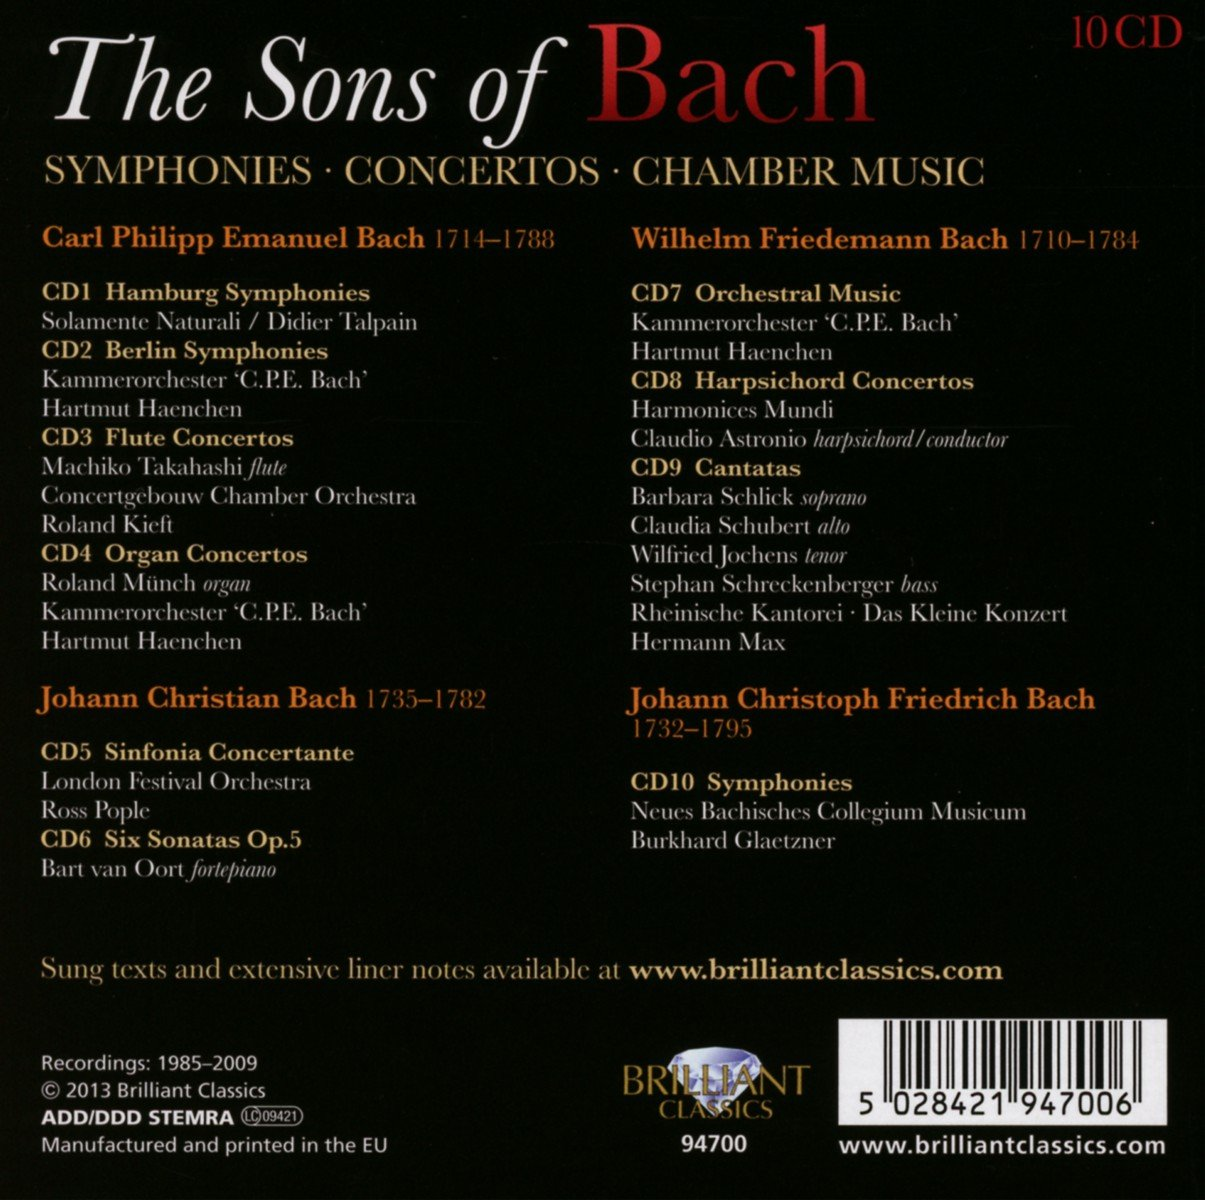 Sons of Bach: Symphonies Concertos Chamber Music by CD